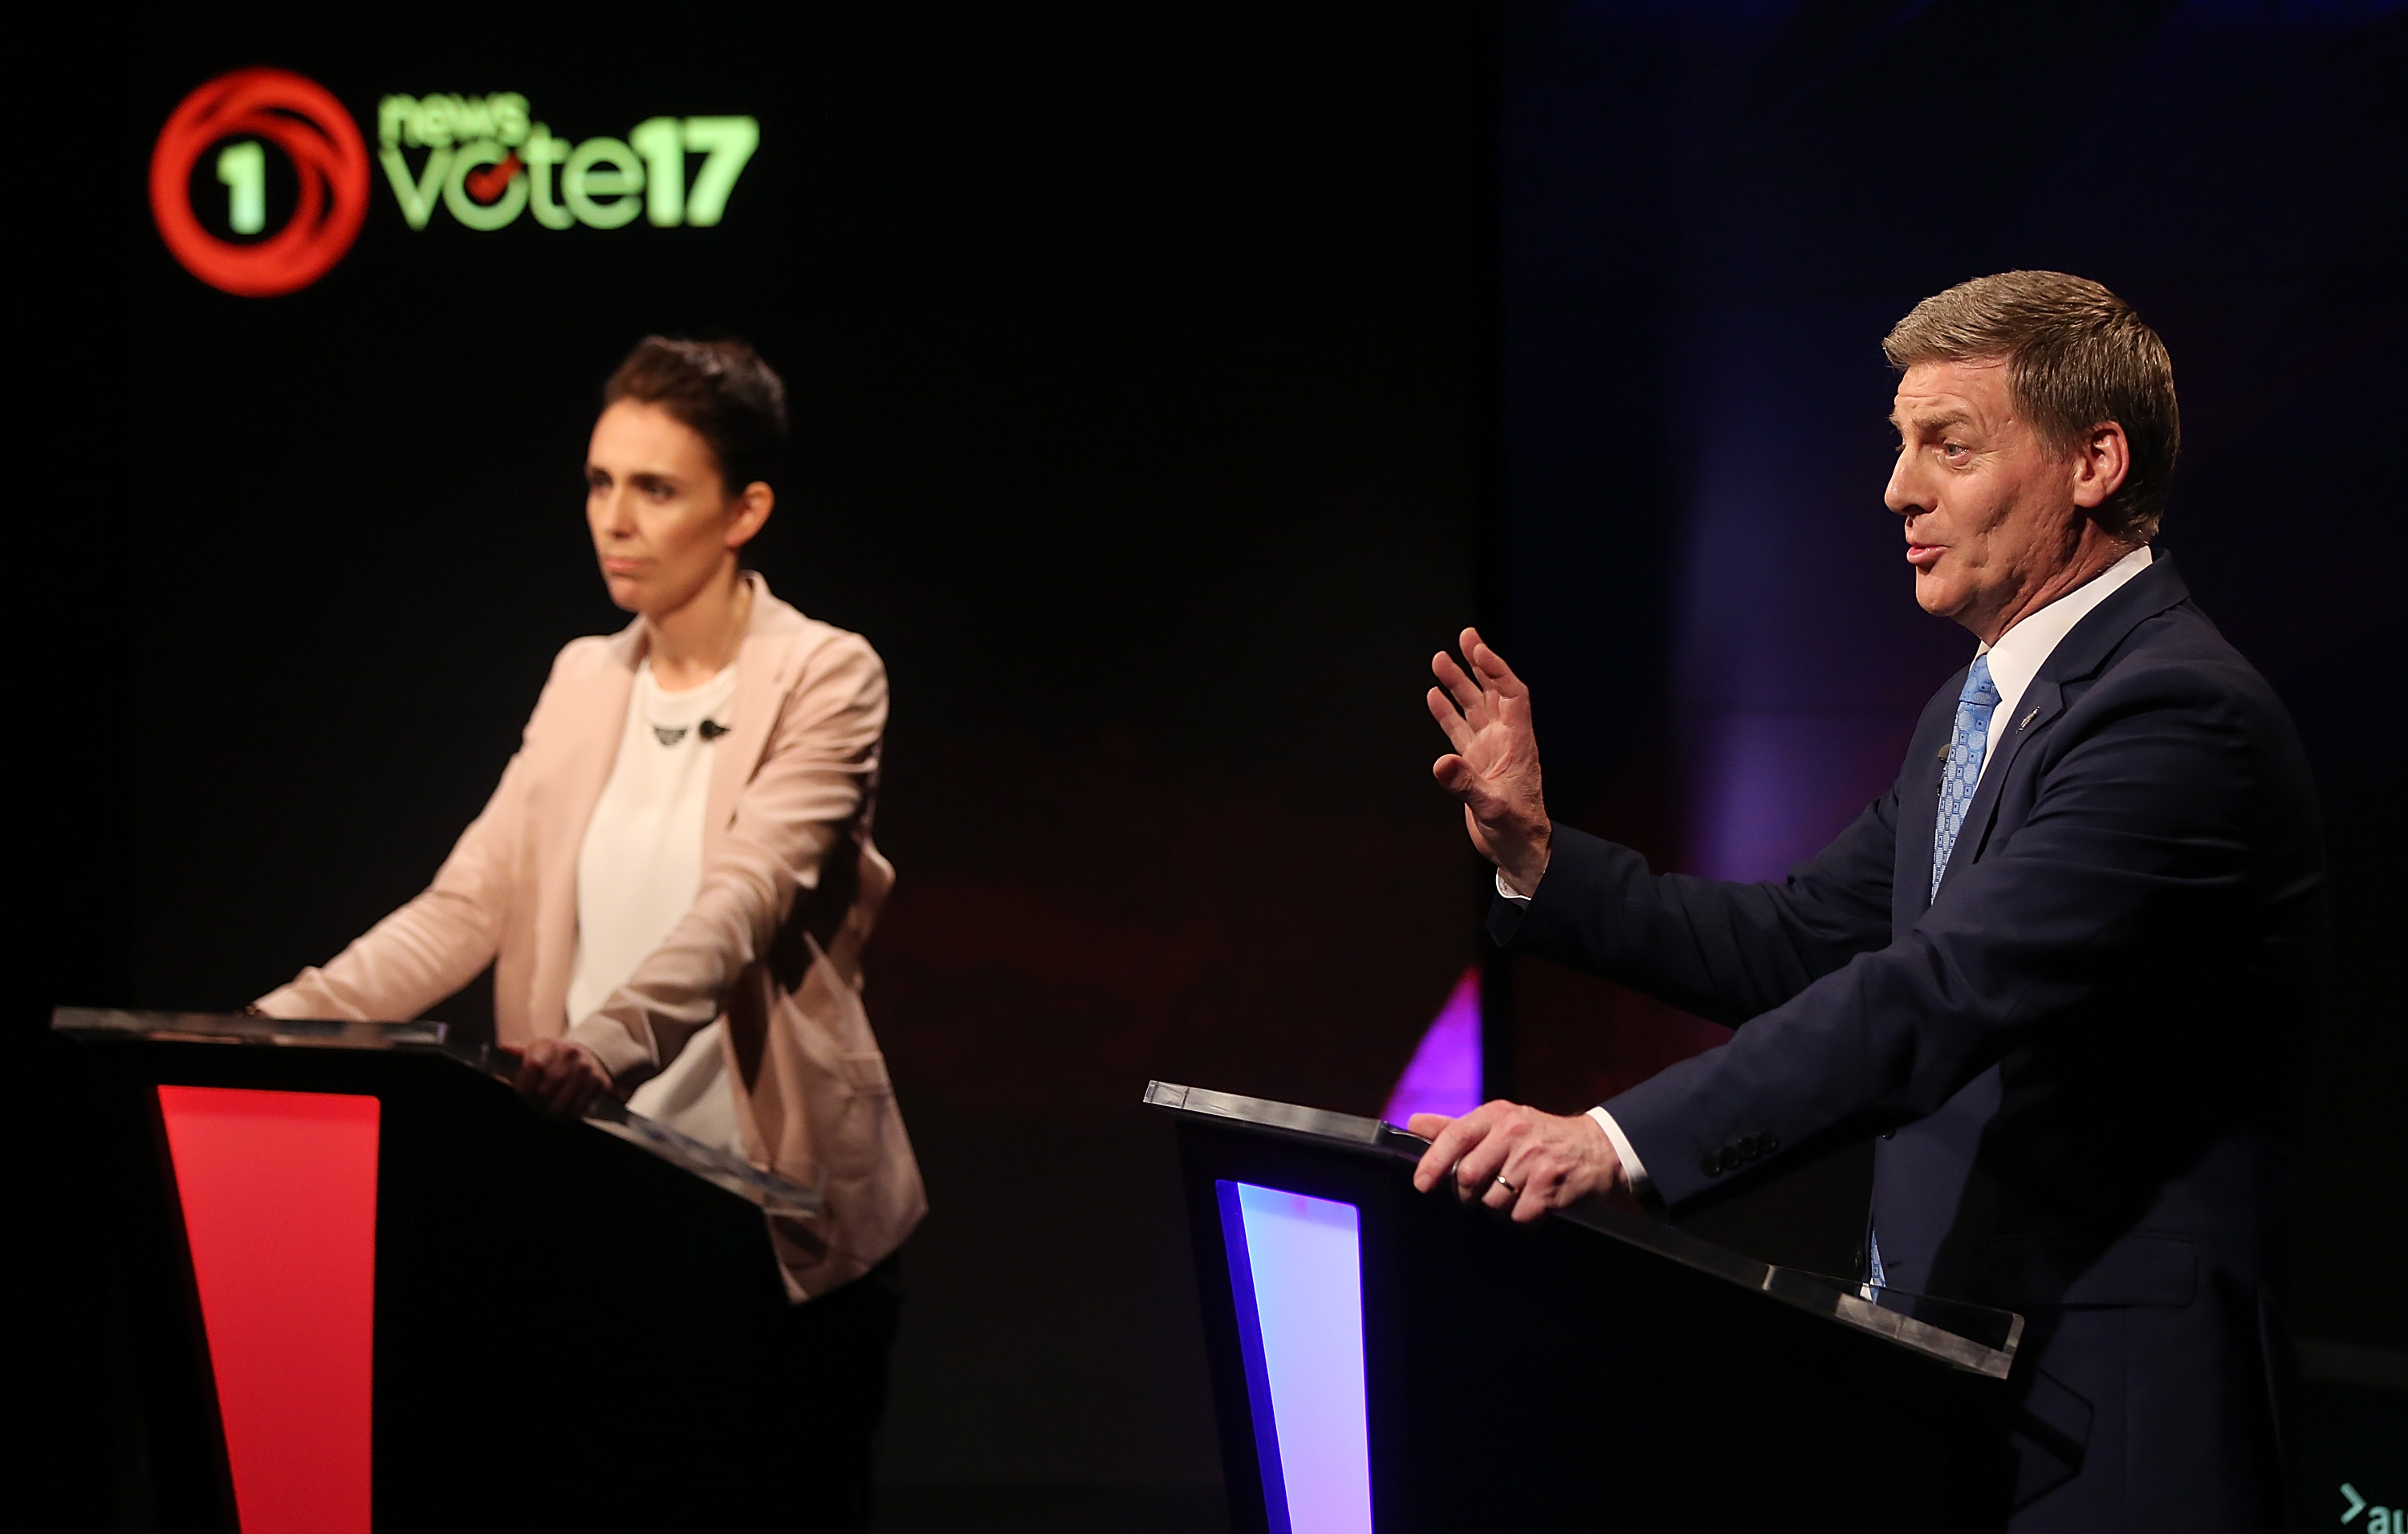 Vote 2017 1st Leaders Debate